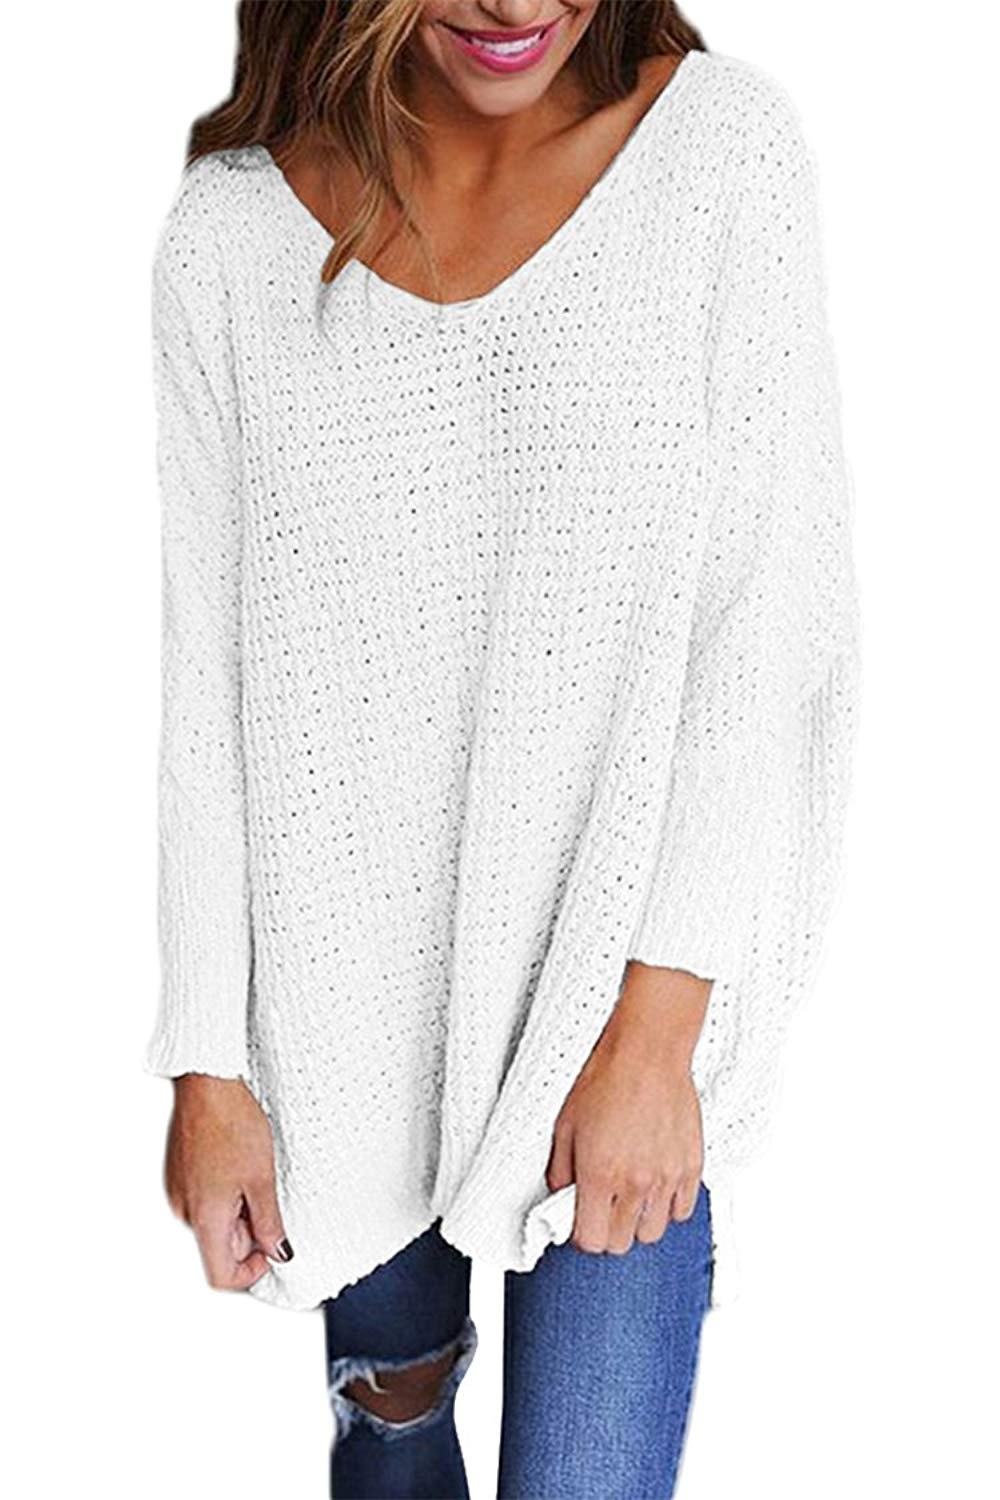 a91079c440 Get Quotations · Viottis Women s Loose V-Neck Long Sleeve Pullover Knitted  Sweaters Jumpers Tops